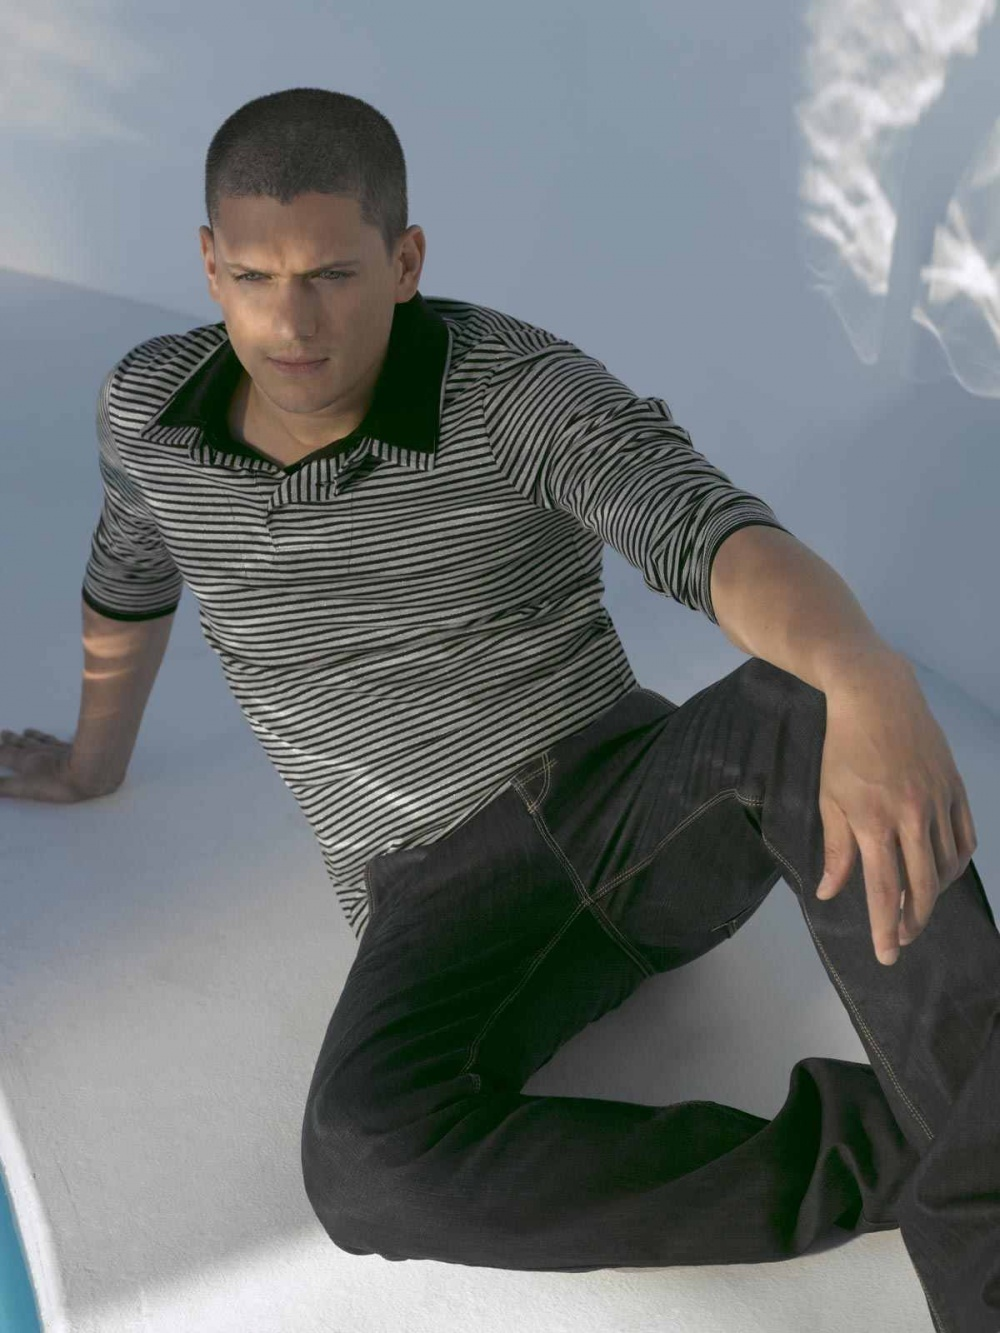 12471 download wallpaper People, Actors, Men, Wentworth Miller screensavers and pictures for free